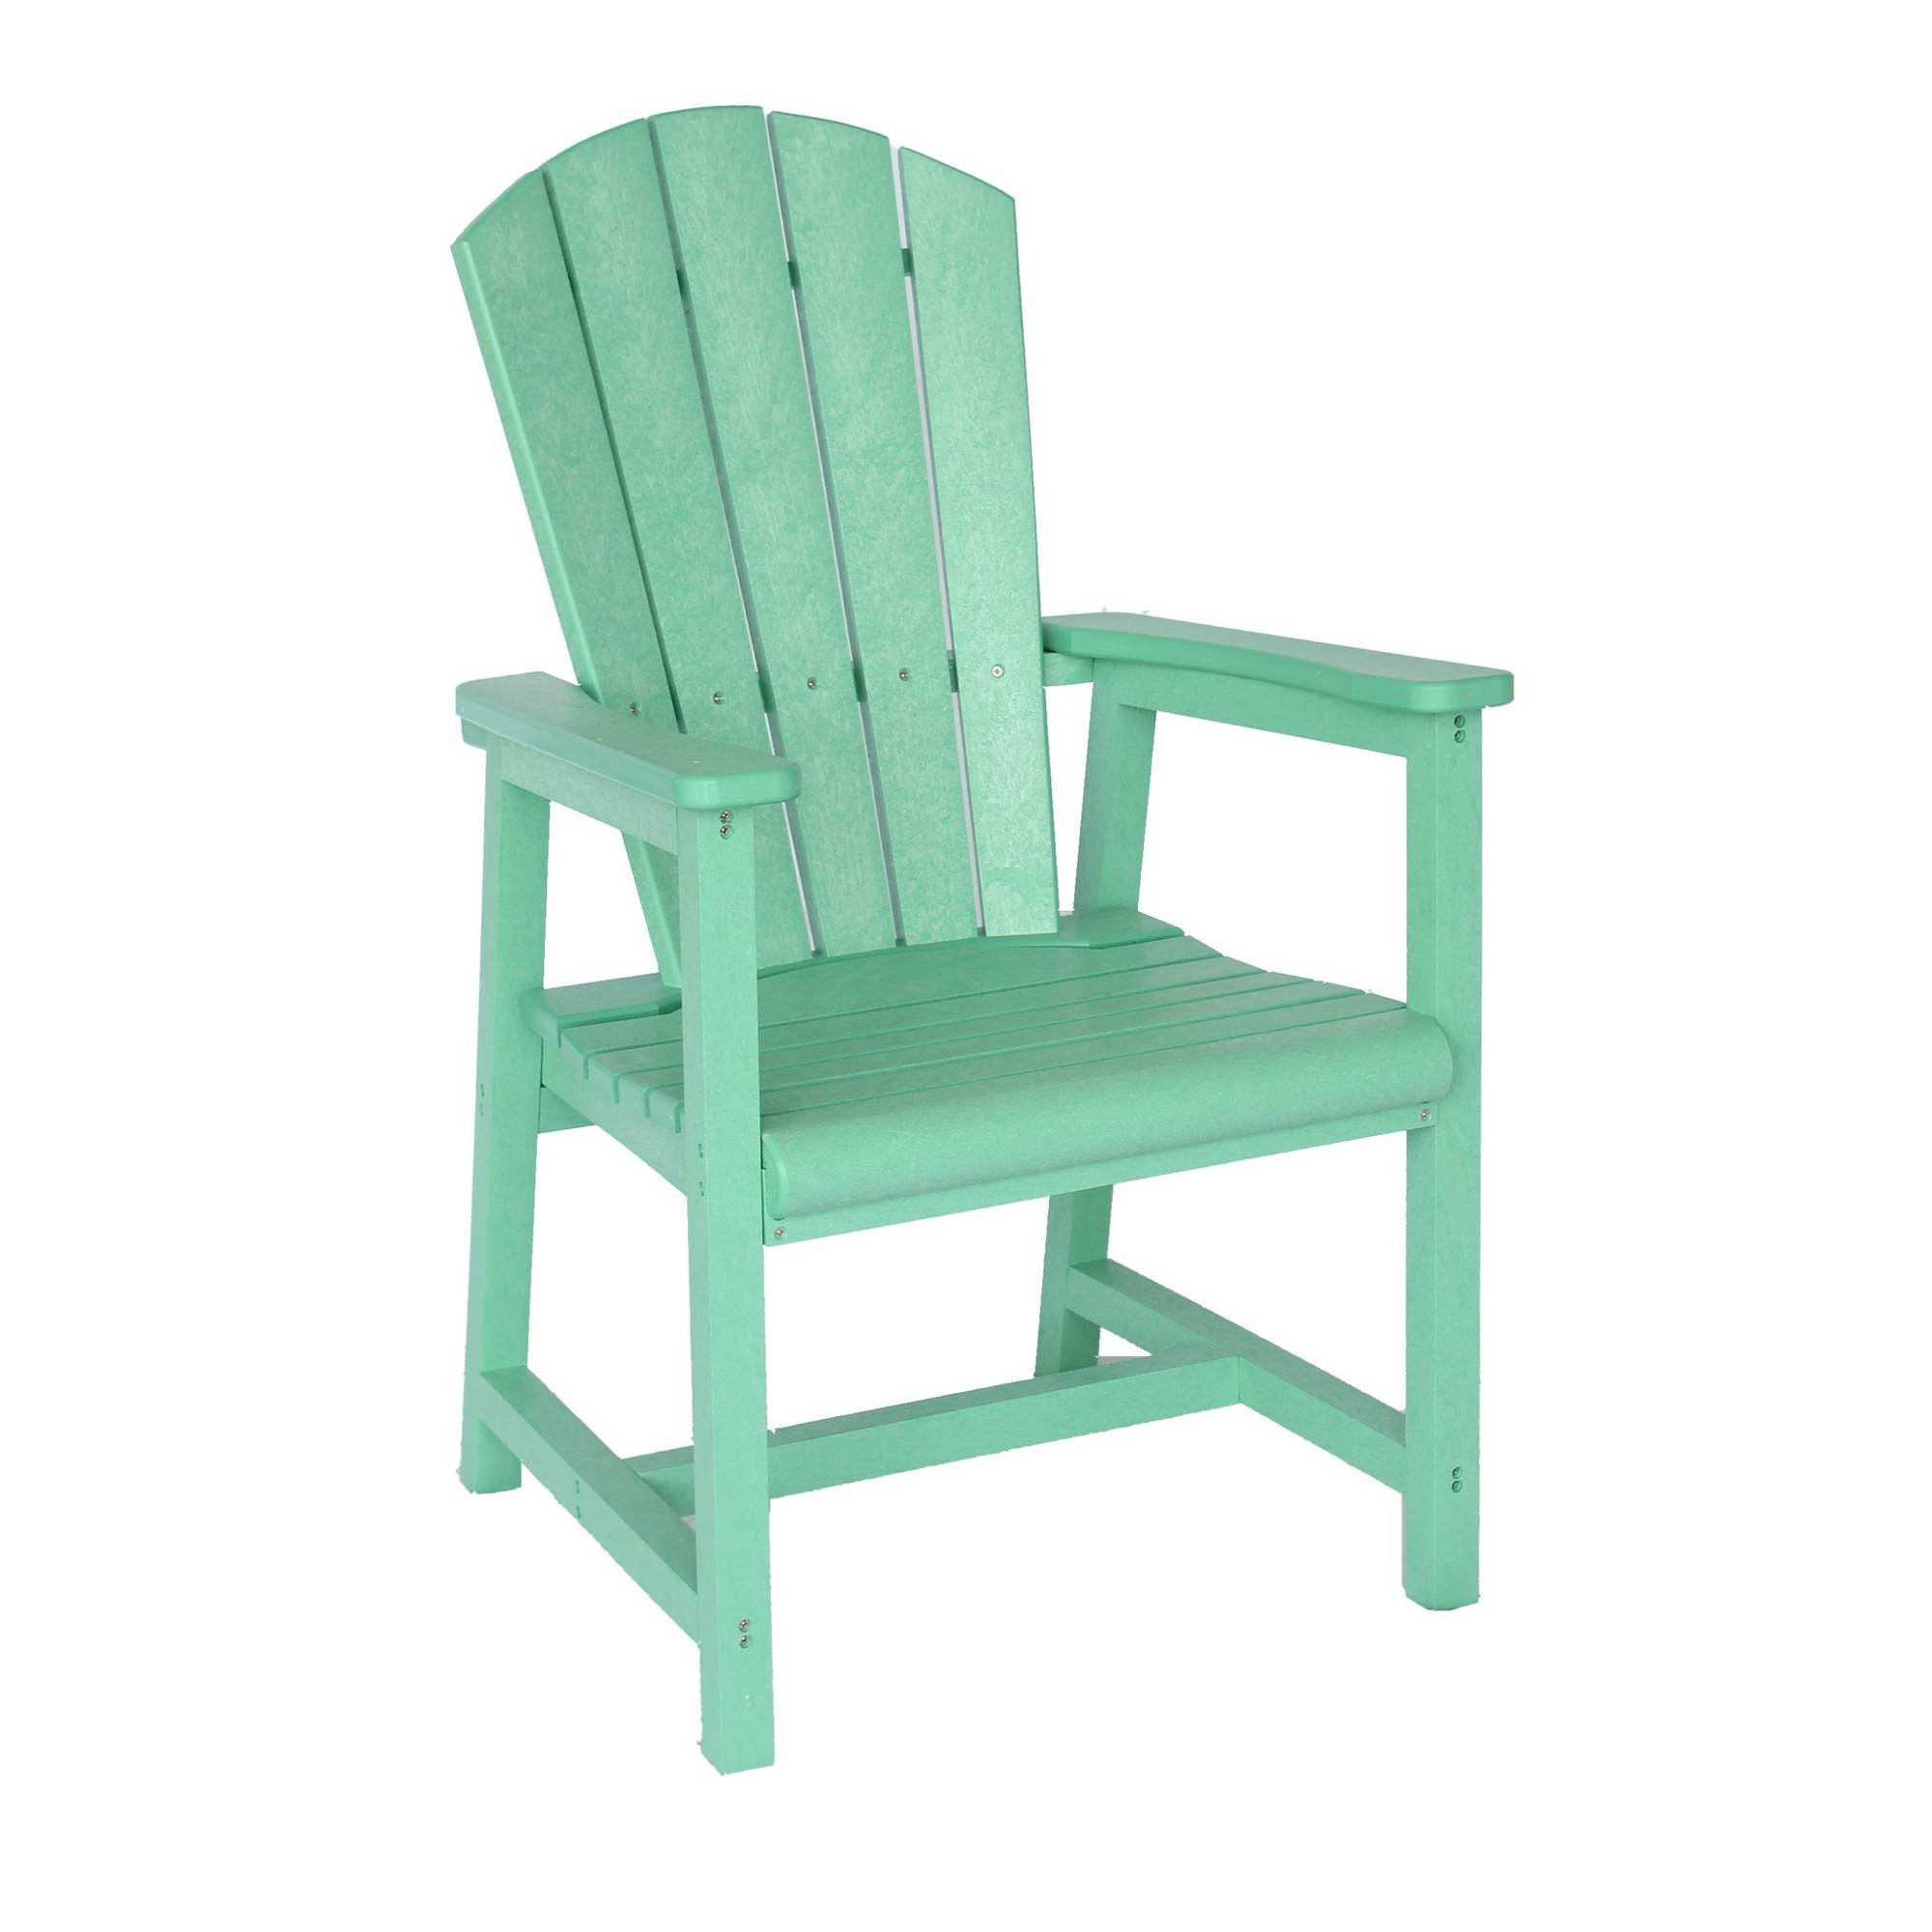 adirondack style dining chairs zero gravity massage chair reviews mint green upright polywood outdoor crp c10